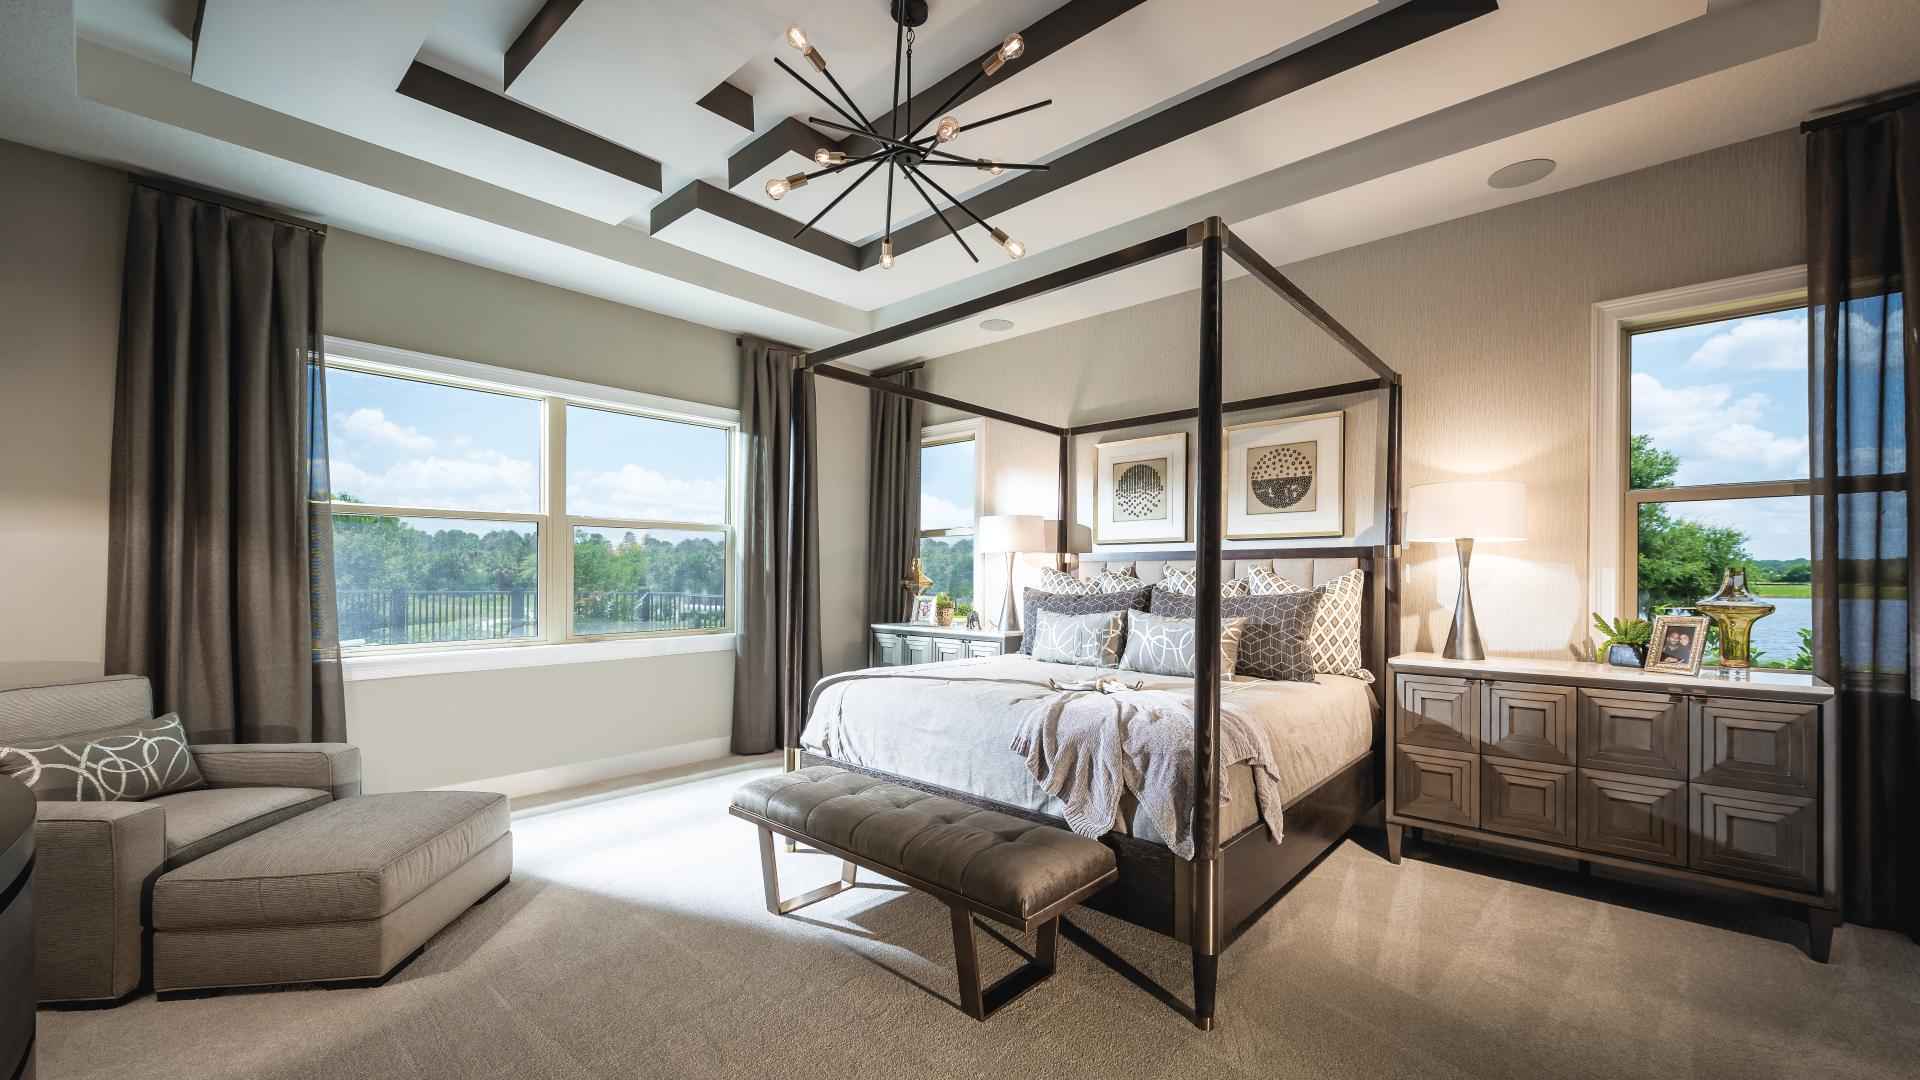 Private primary bedrooms